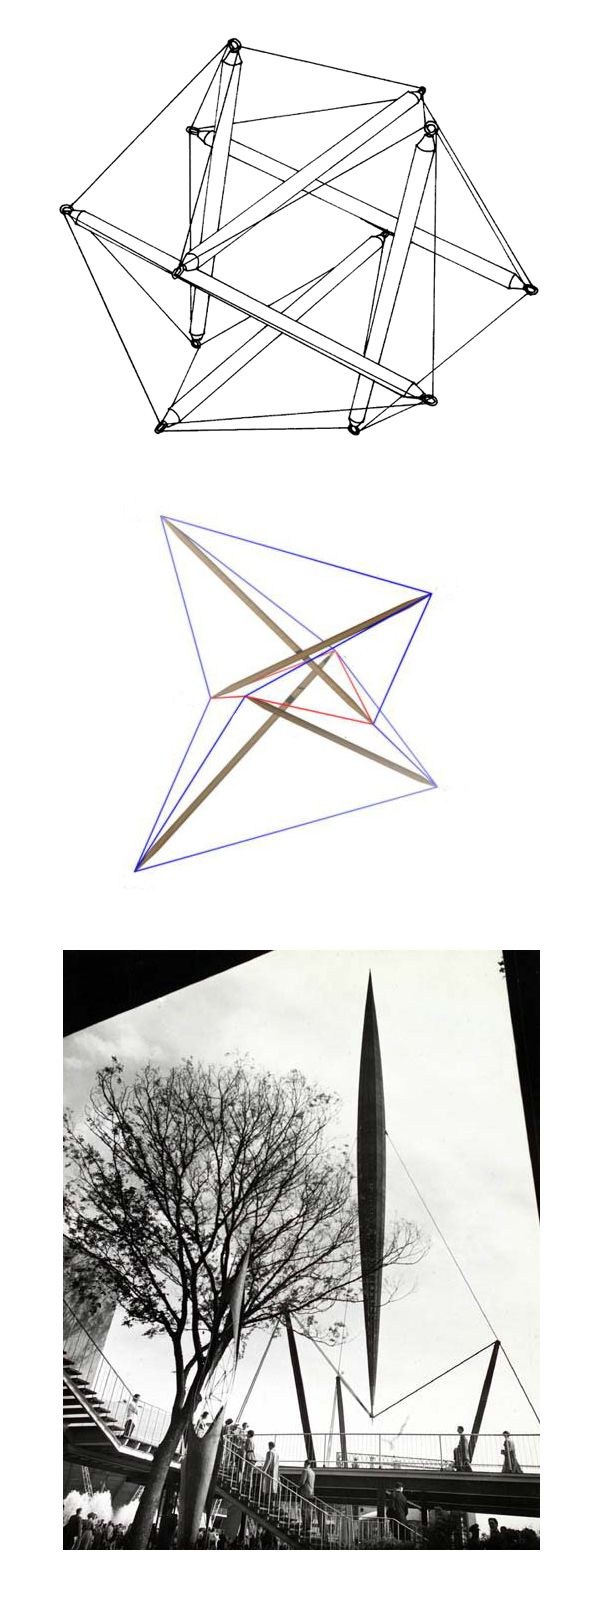 6 Strut Tensegrity Outlining An Octahedron Skylon Tower